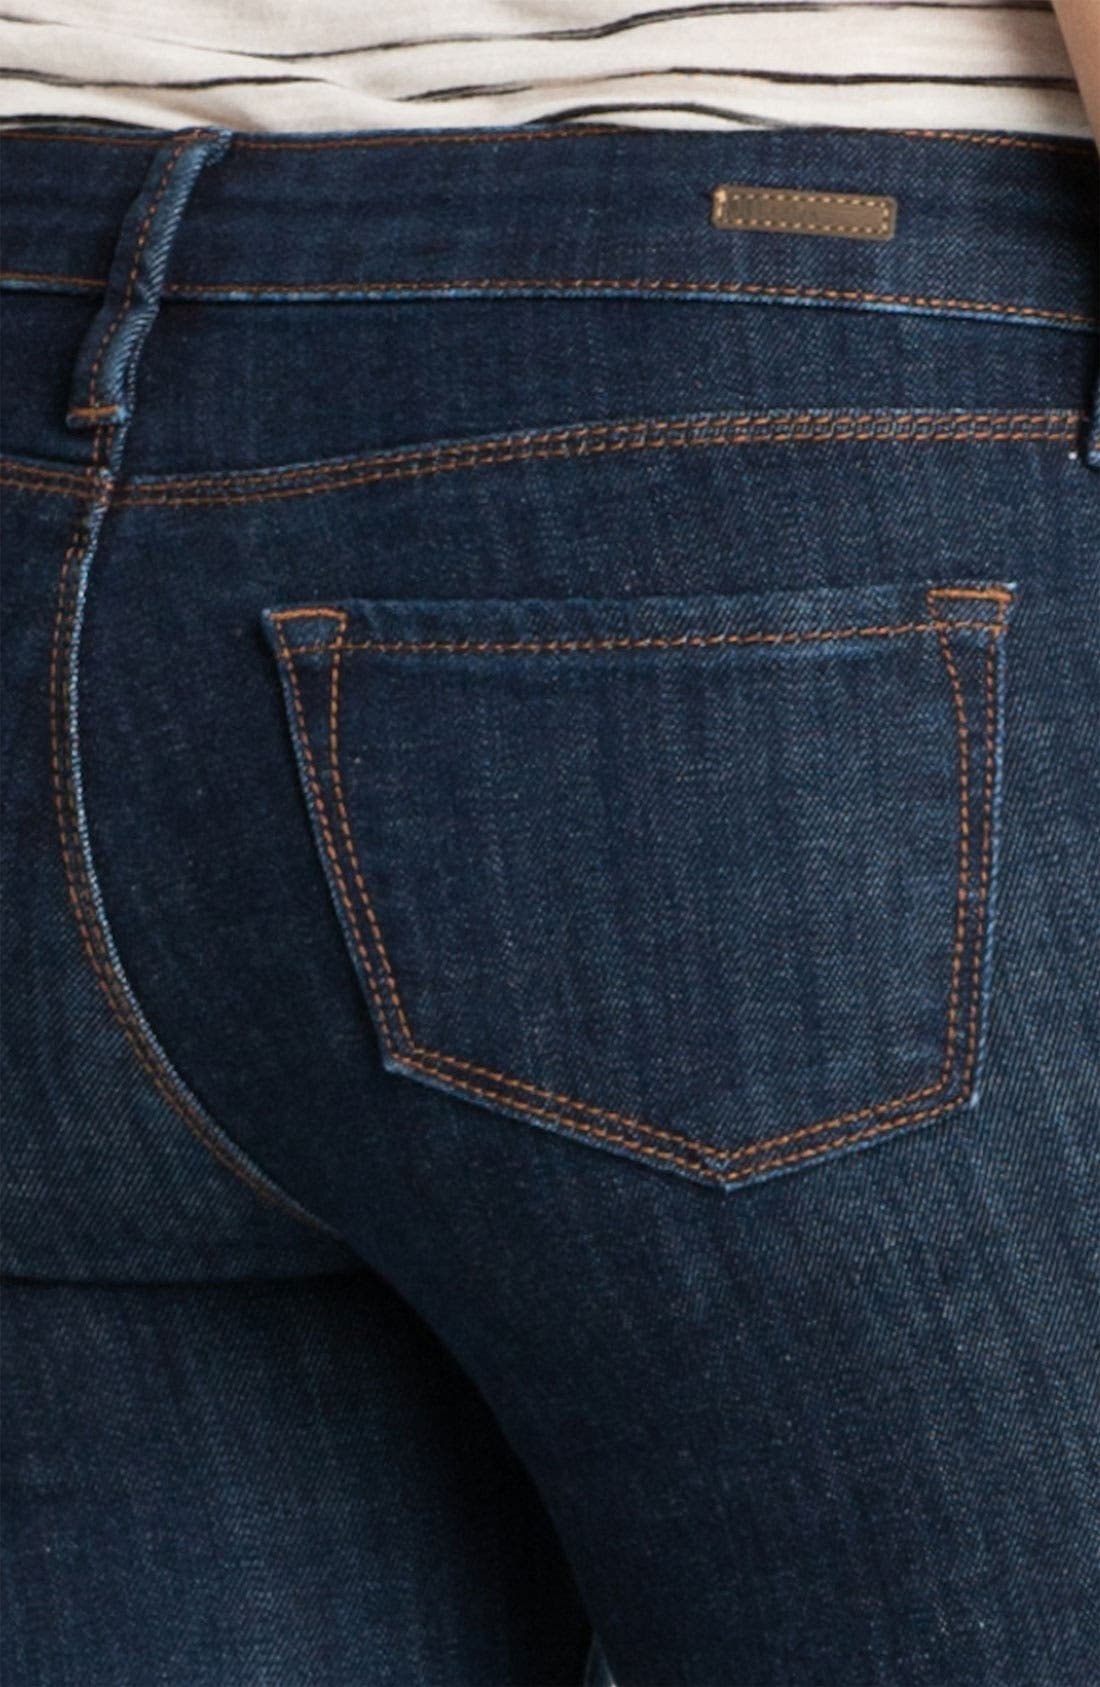 Alternate Image 3  - KUT from the Kloth 'Jennifer' Skinny Jeans (Amazing) (Online Exclusive)